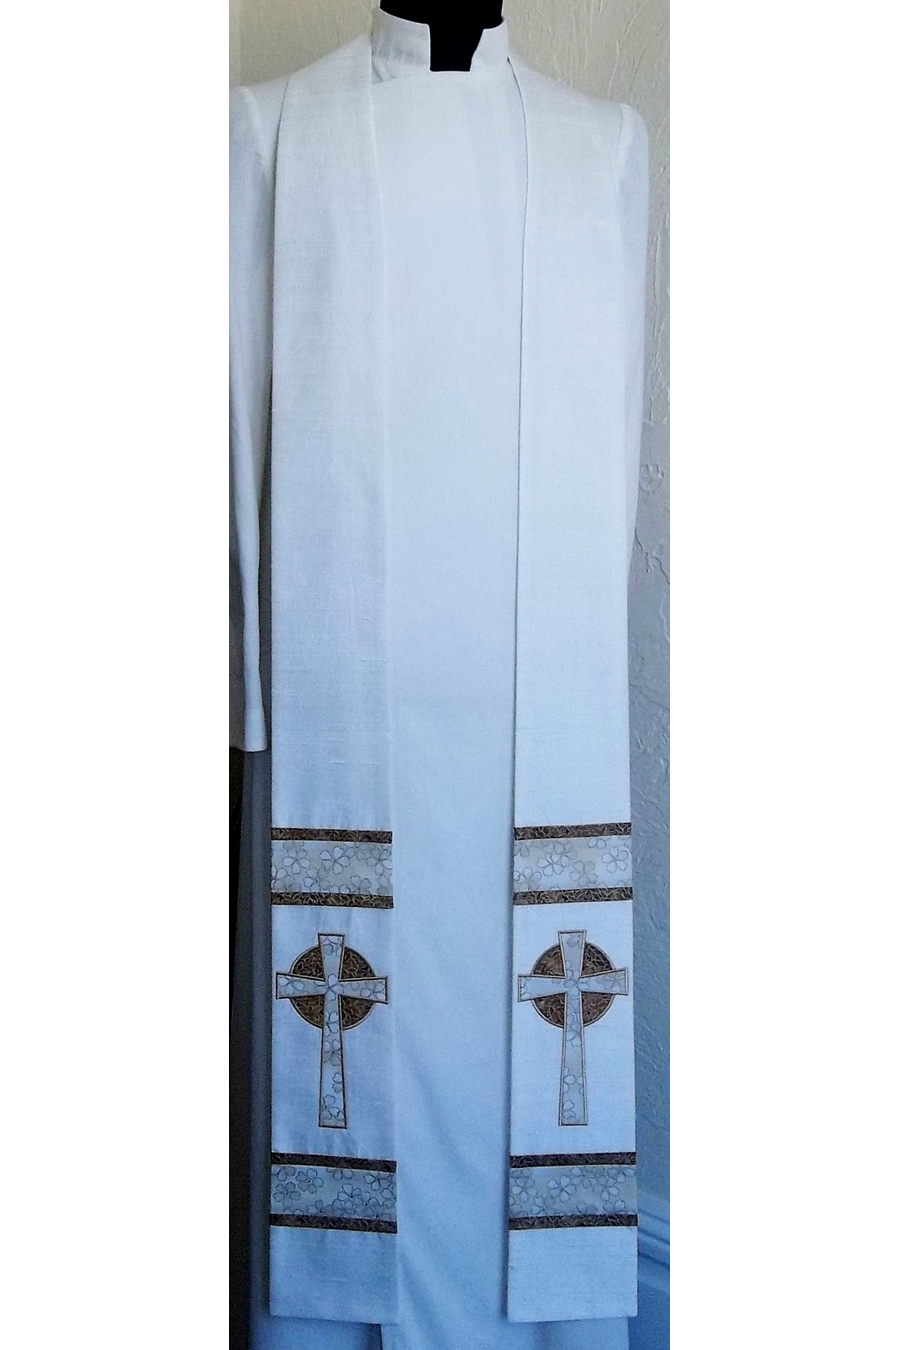 God's Eternal Love: White Clergy Stole with Celtic Cross Design